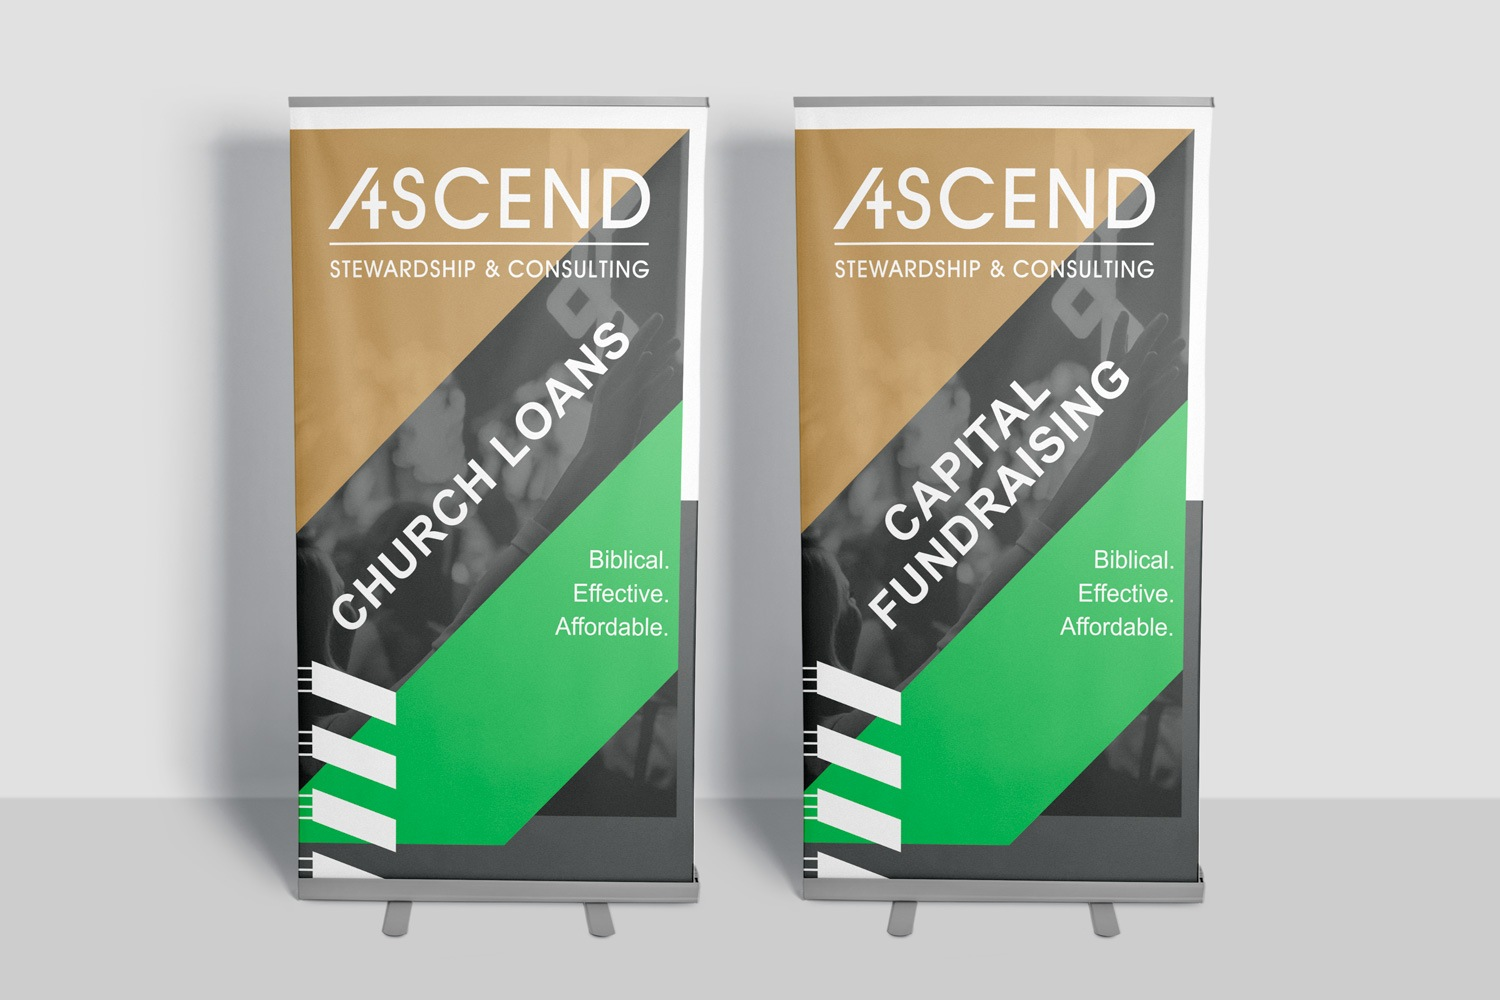 Church Stewardship Campaign Roll banner / Retractable banner example by Abstract Union in Lincoln, NE